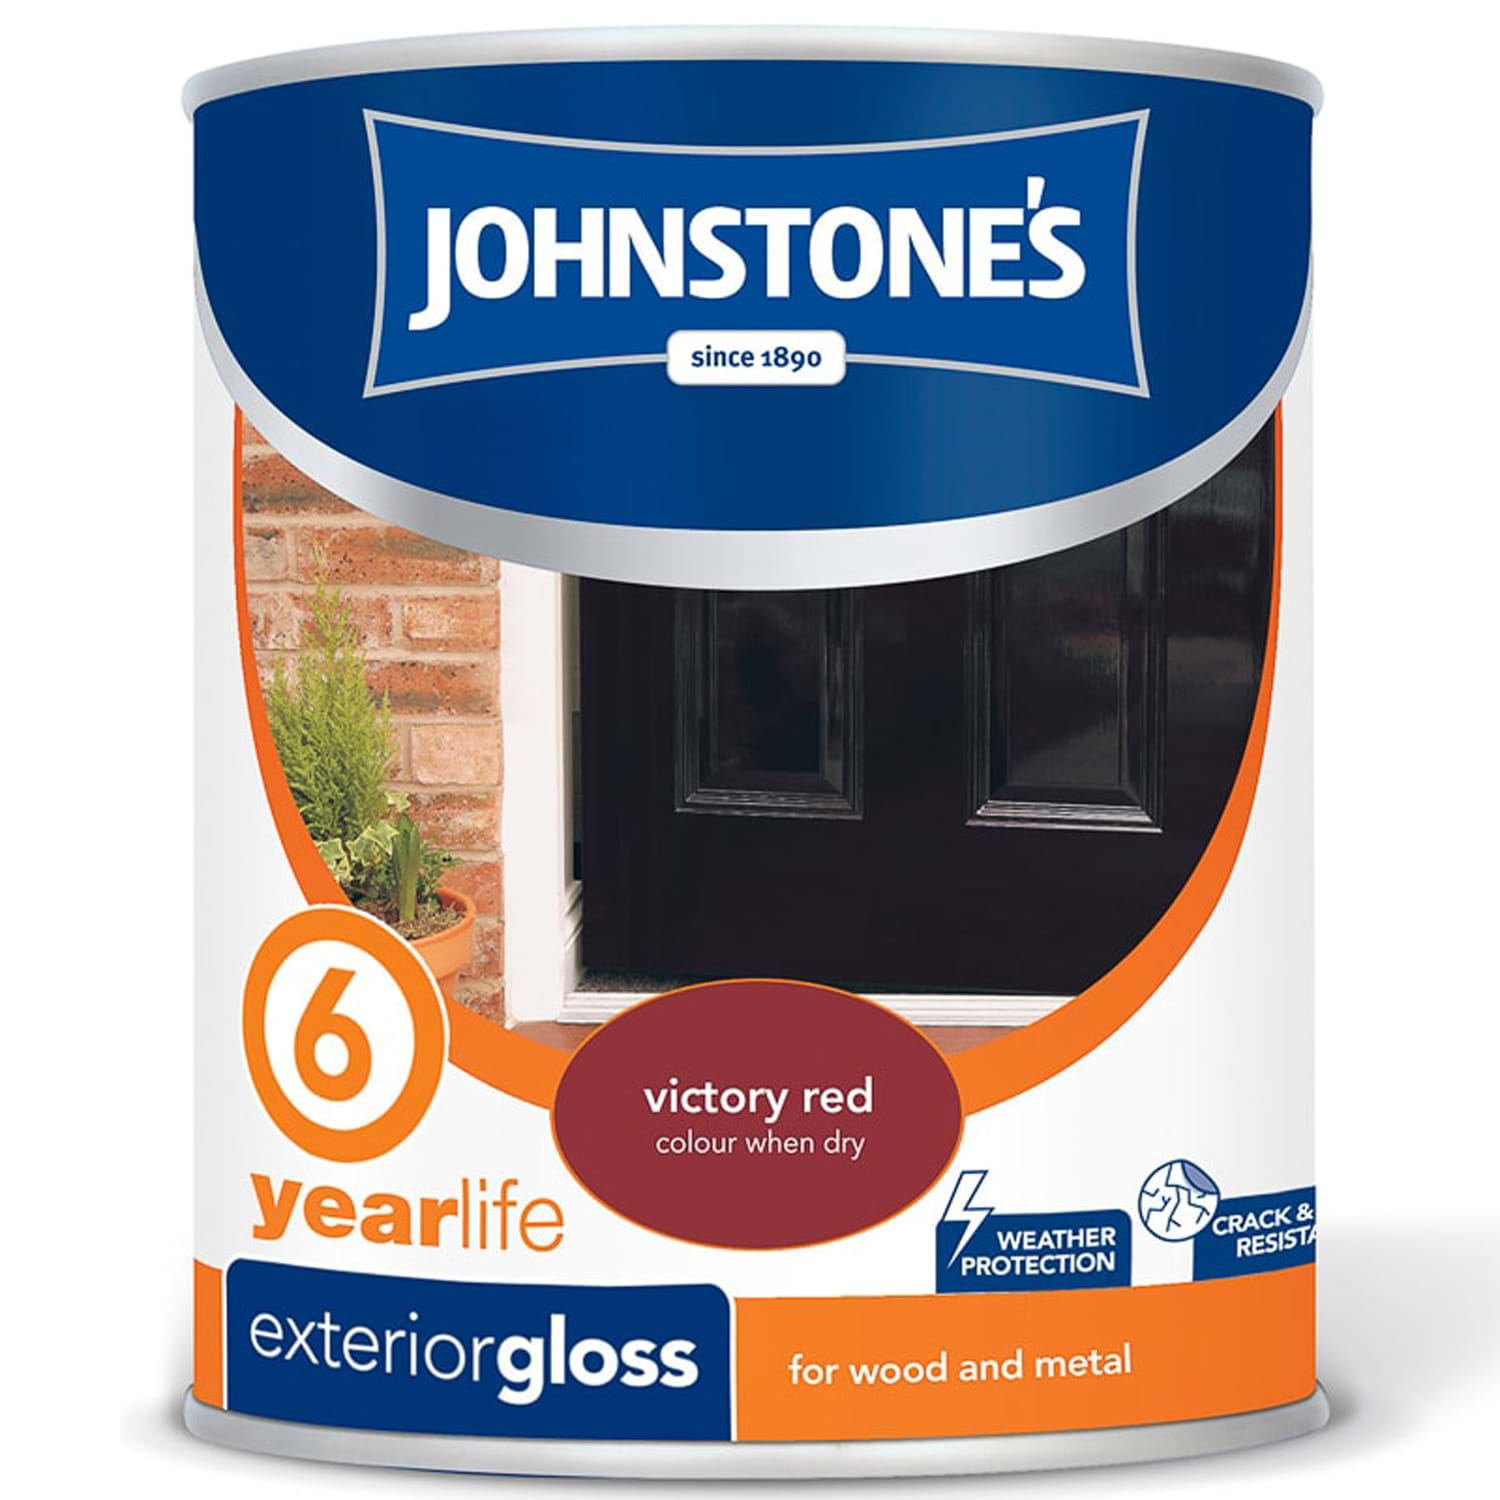 Compare sandtex exterior gloss paint prices and deals - Johnstones exterior masonry paint ...